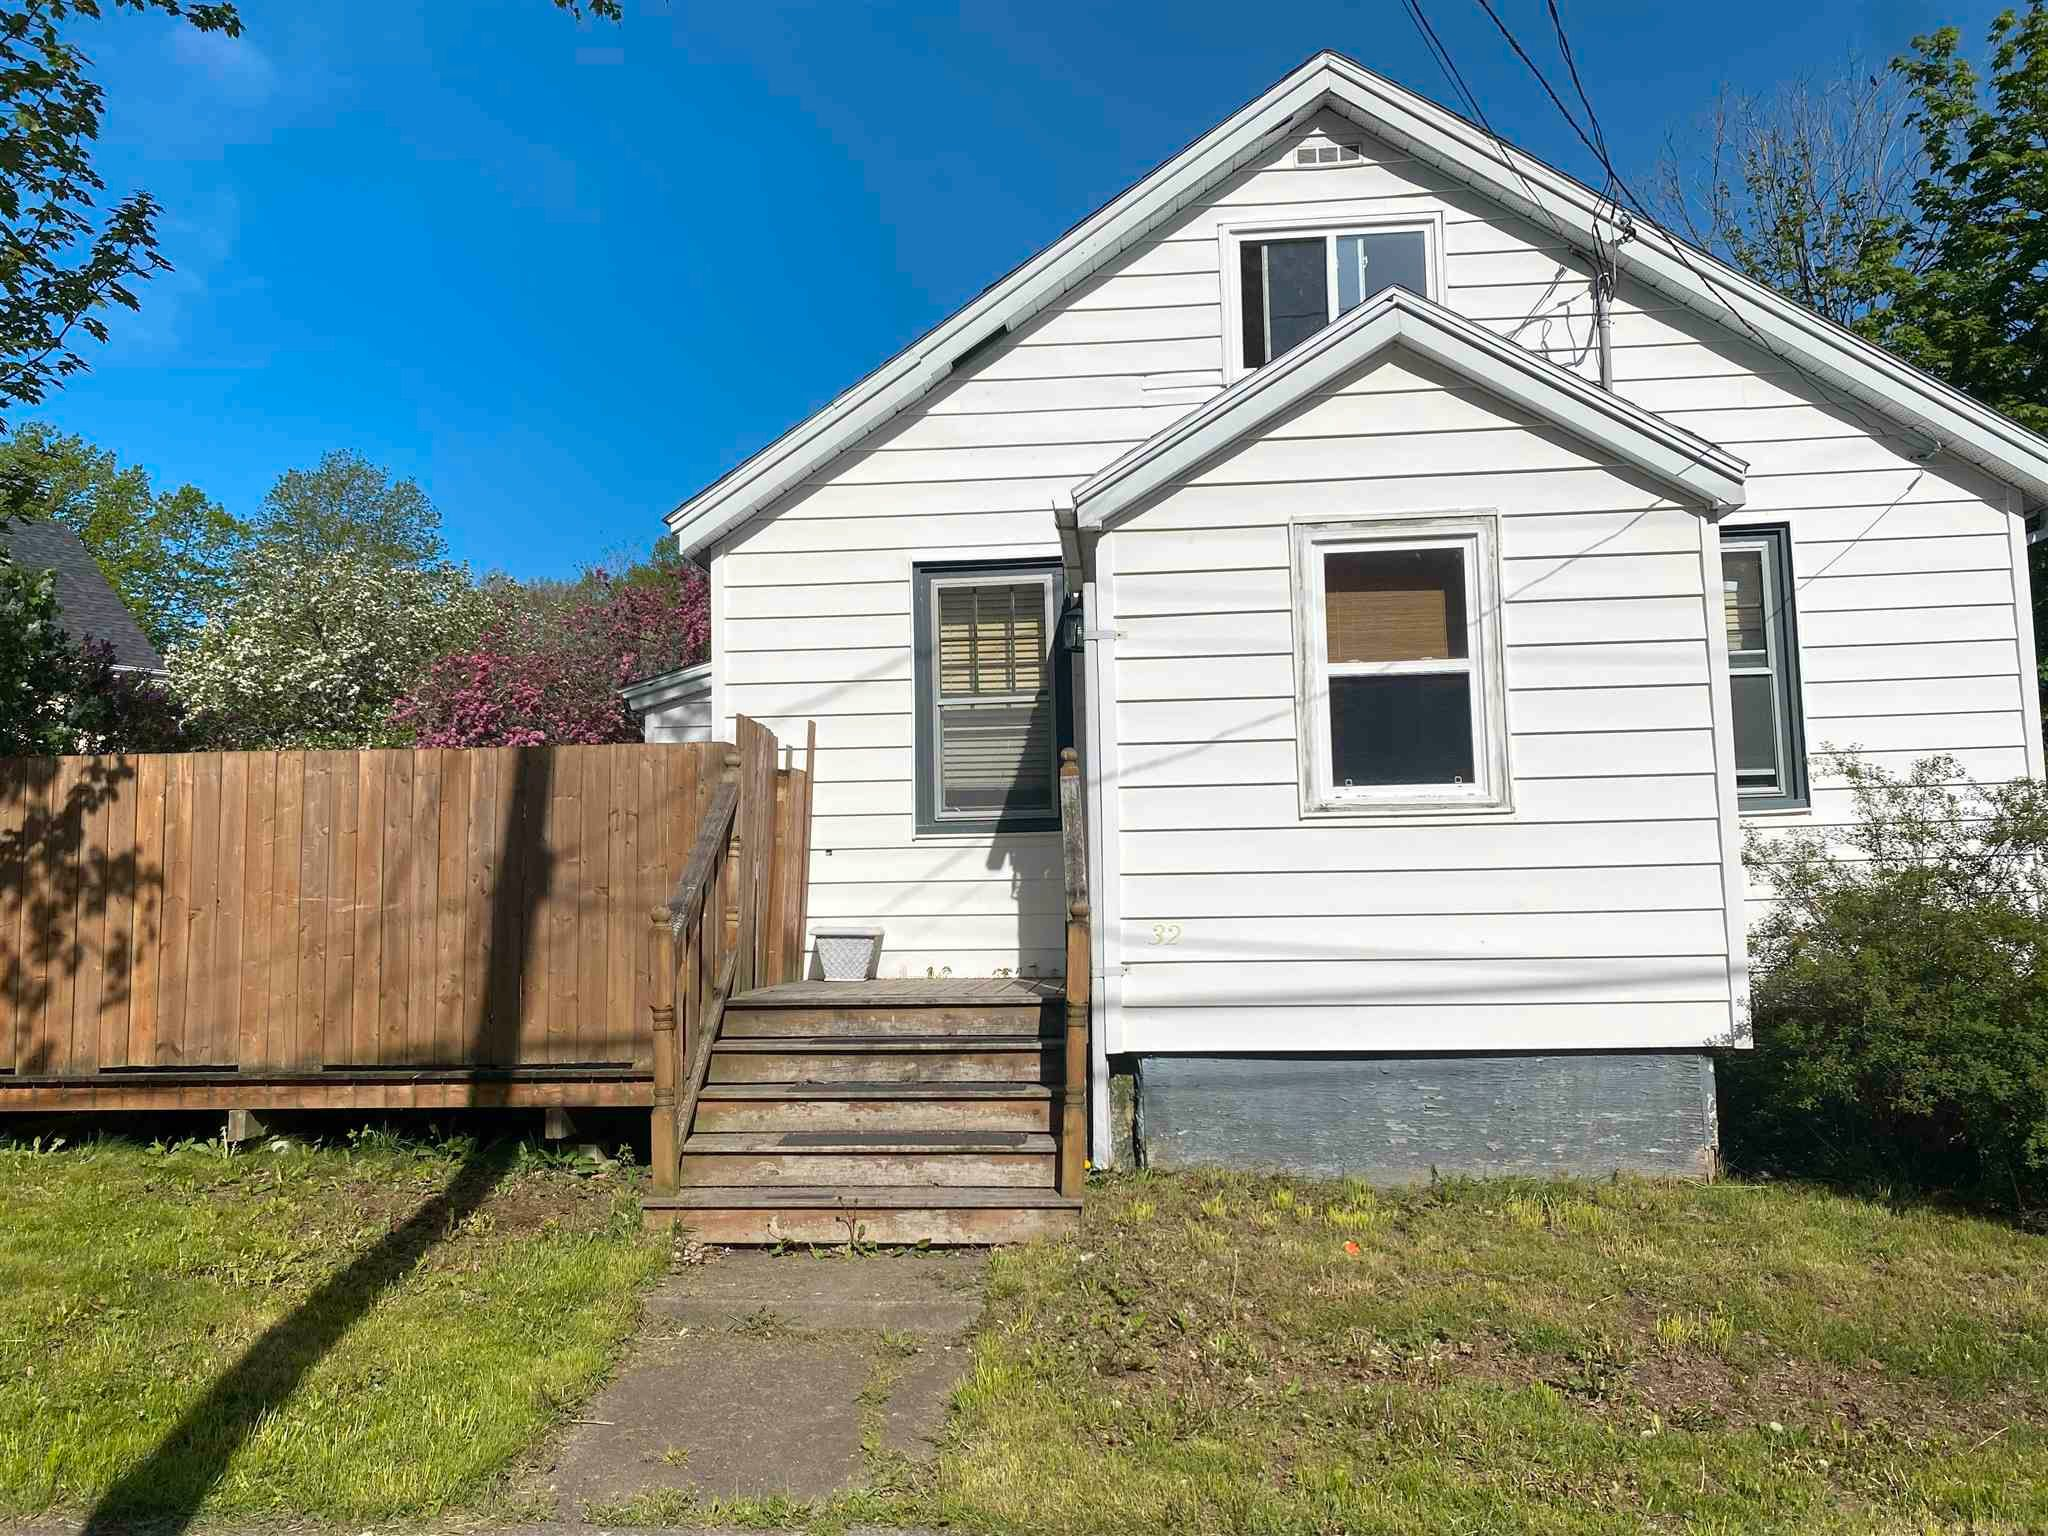 Main Photo: 32 Rotary Drive in Sydney: 201-Sydney Residential for sale (Cape Breton)  : MLS®# 202114310